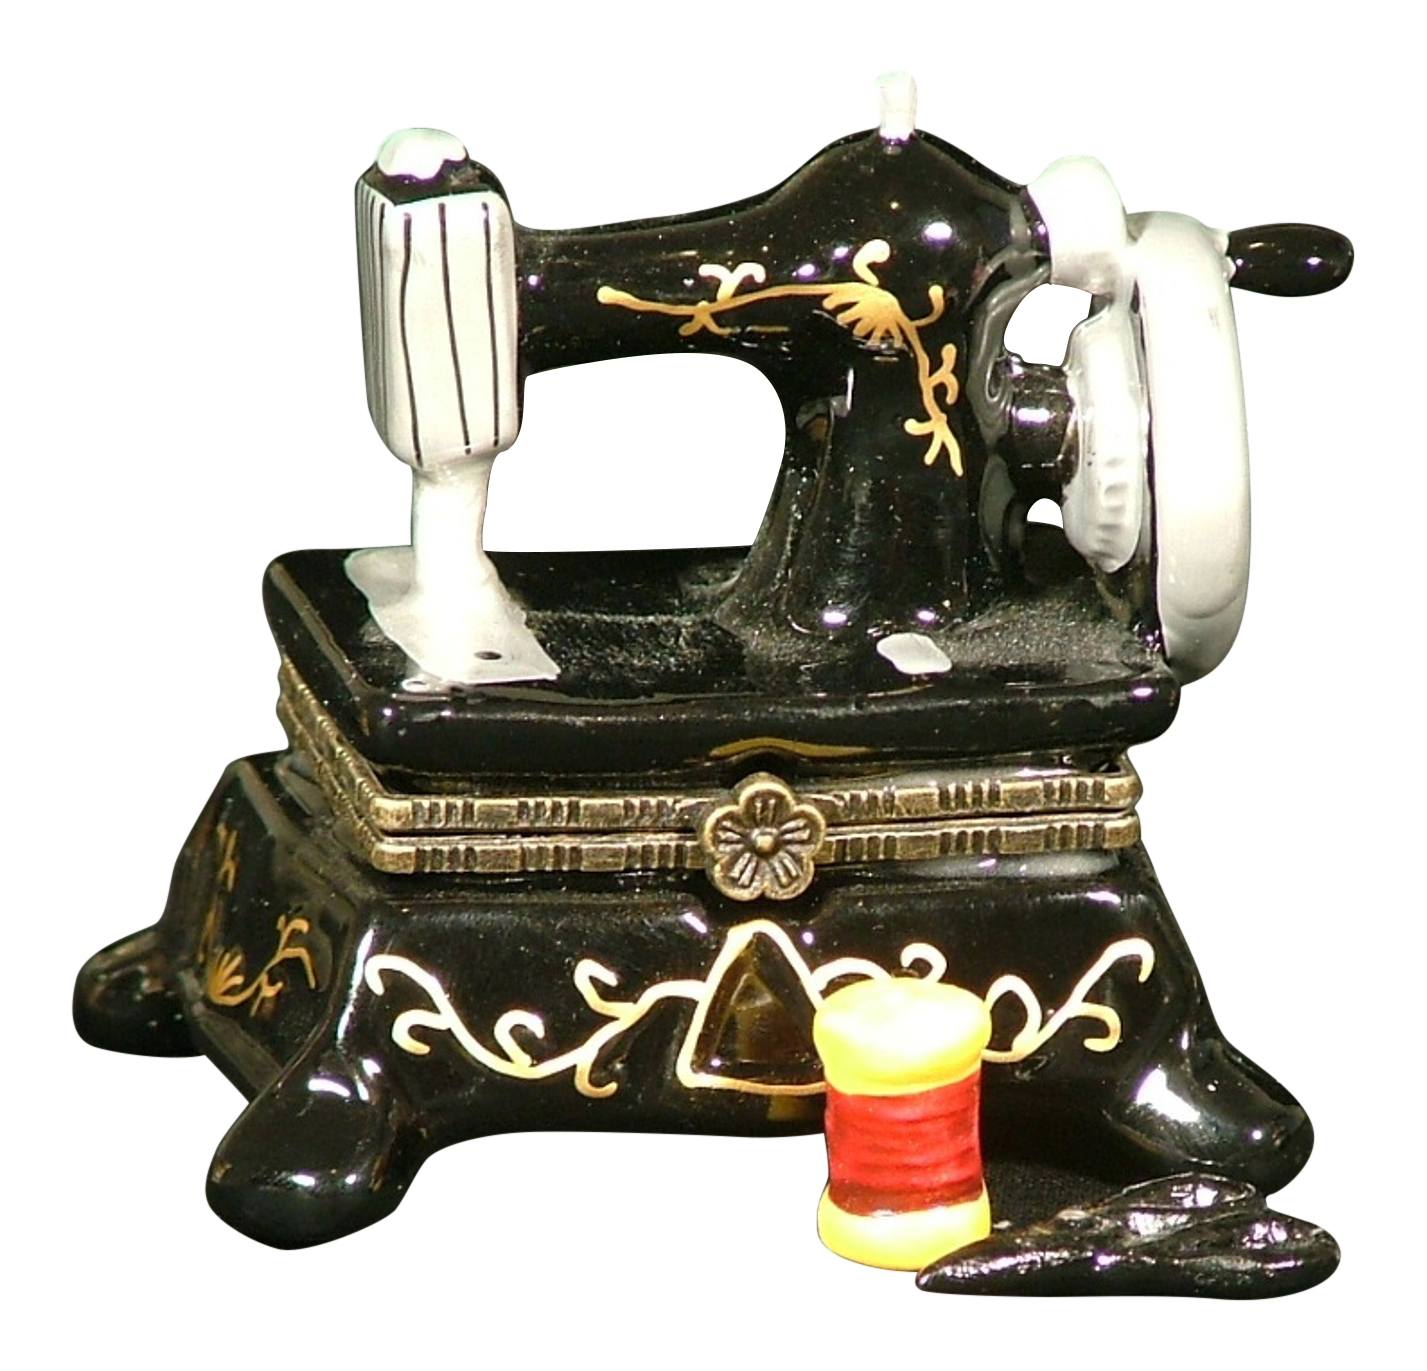 Sew Seamstress Sewing Machine Hinge Trinket Box phb 197